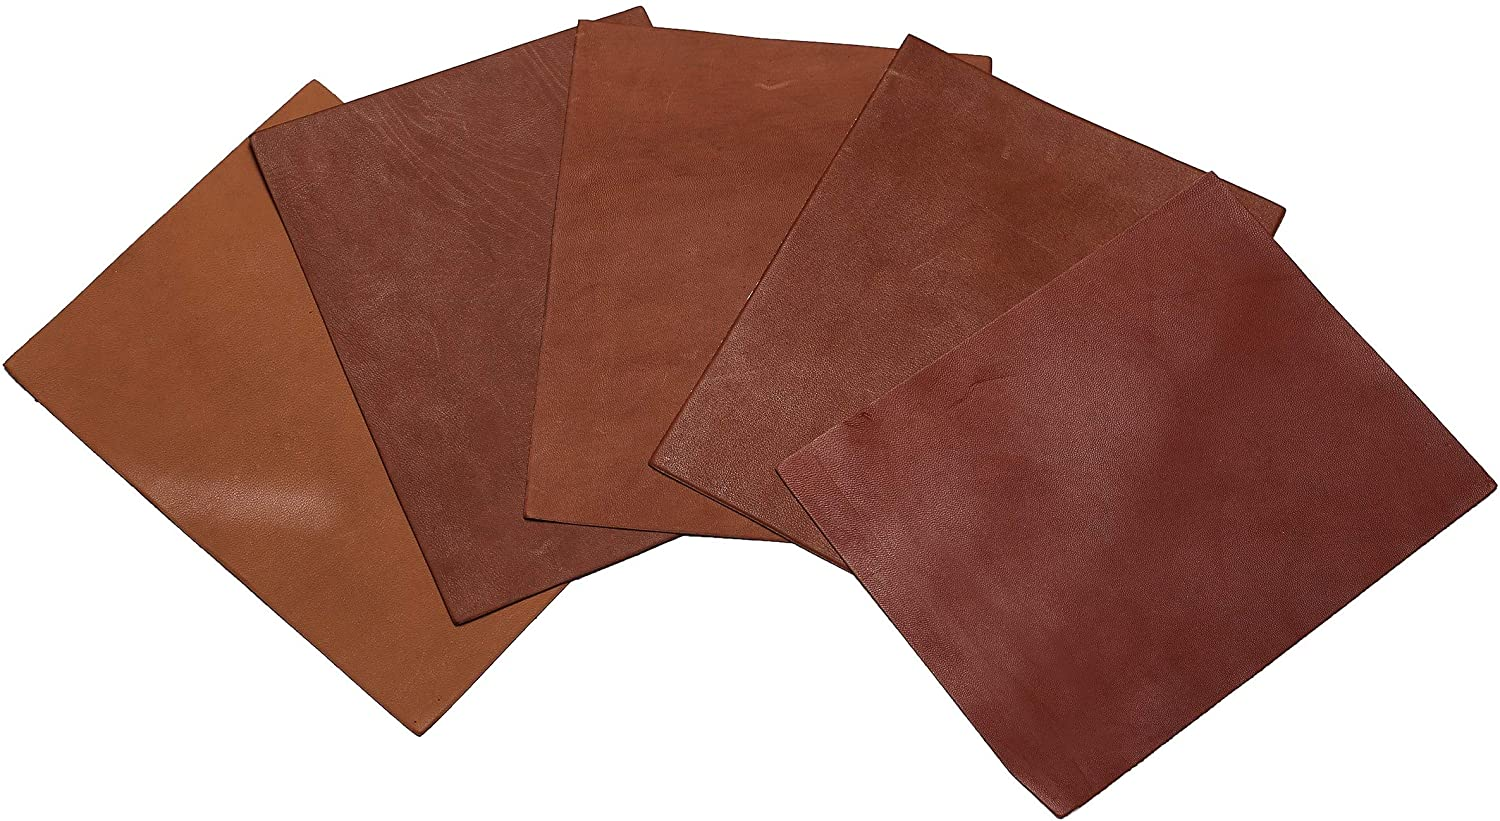 Leather Pieces 5 Rectangle Sheets of Cognac/Tan for Crafts (9x7) (Cognac)